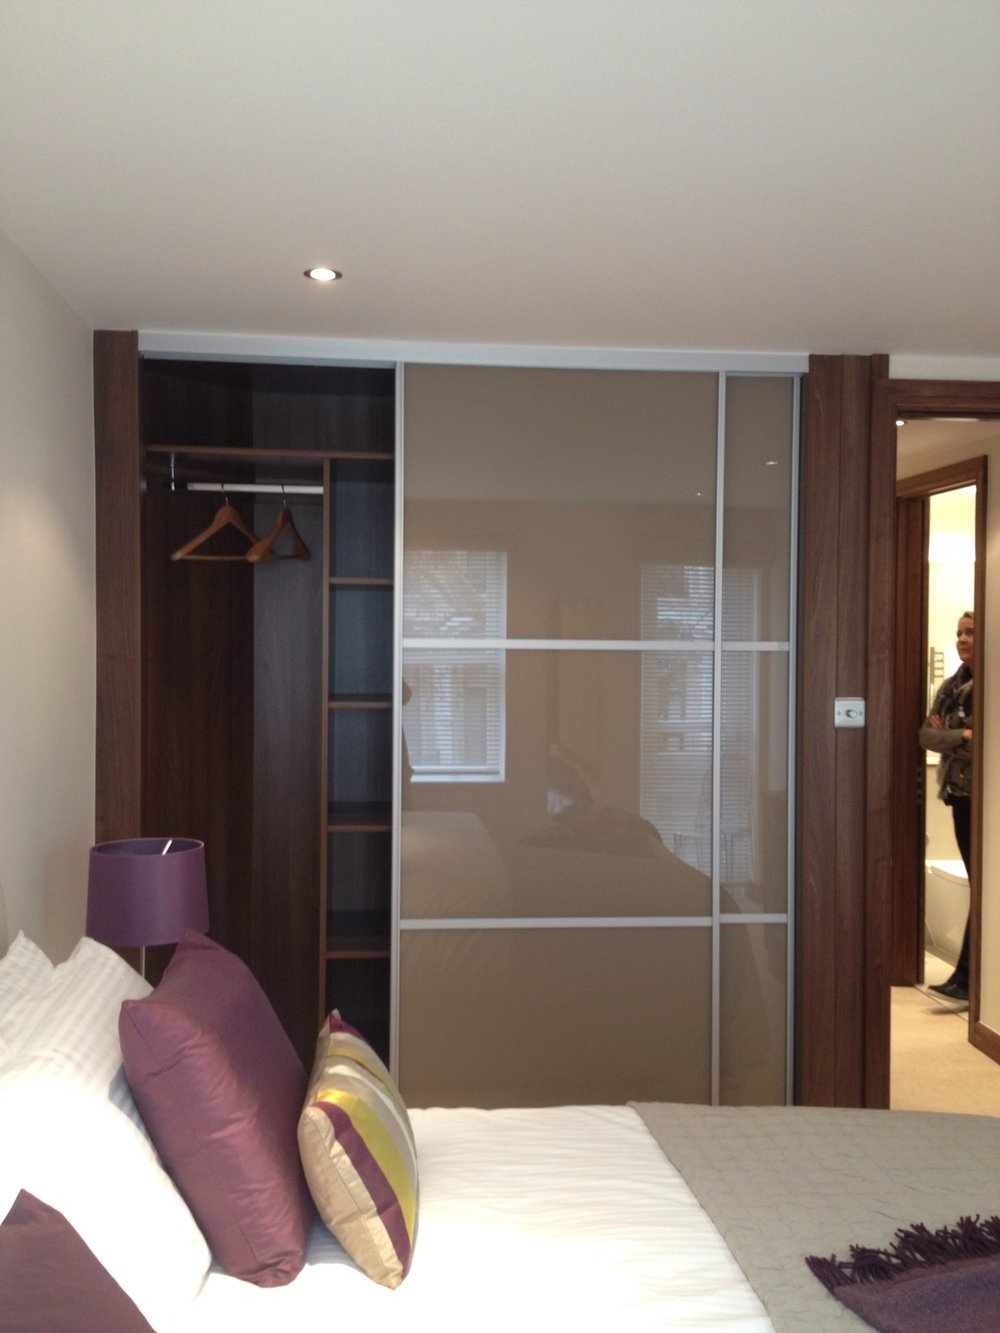 London - a sliding wardrobe for a commercial client. Additional framing to cover an unsightly wall and boxing inside to cover service facilities.